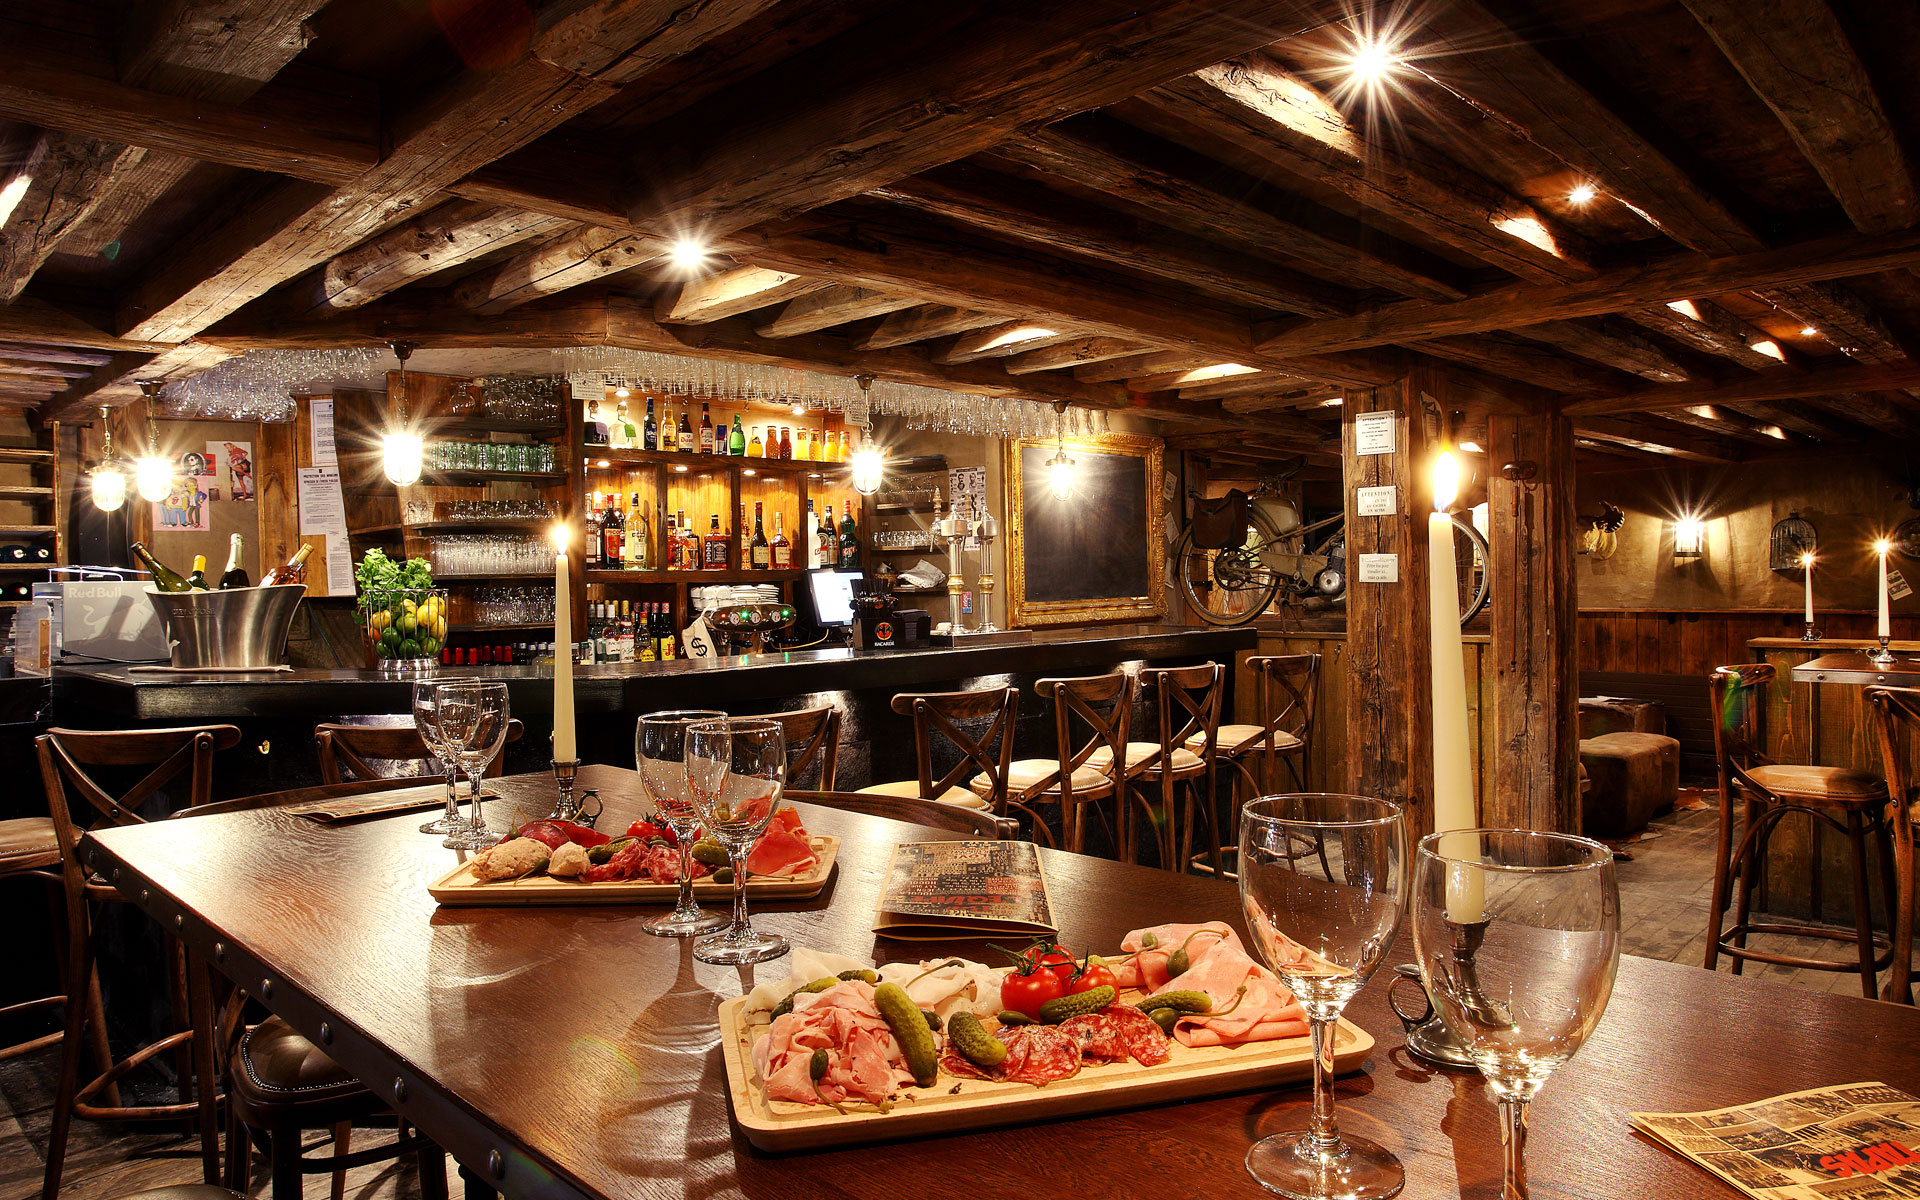 302/Site Maison Tournier/Restaurant/Equipe/equipe_courchevel_restaurant_bar_6.jpg